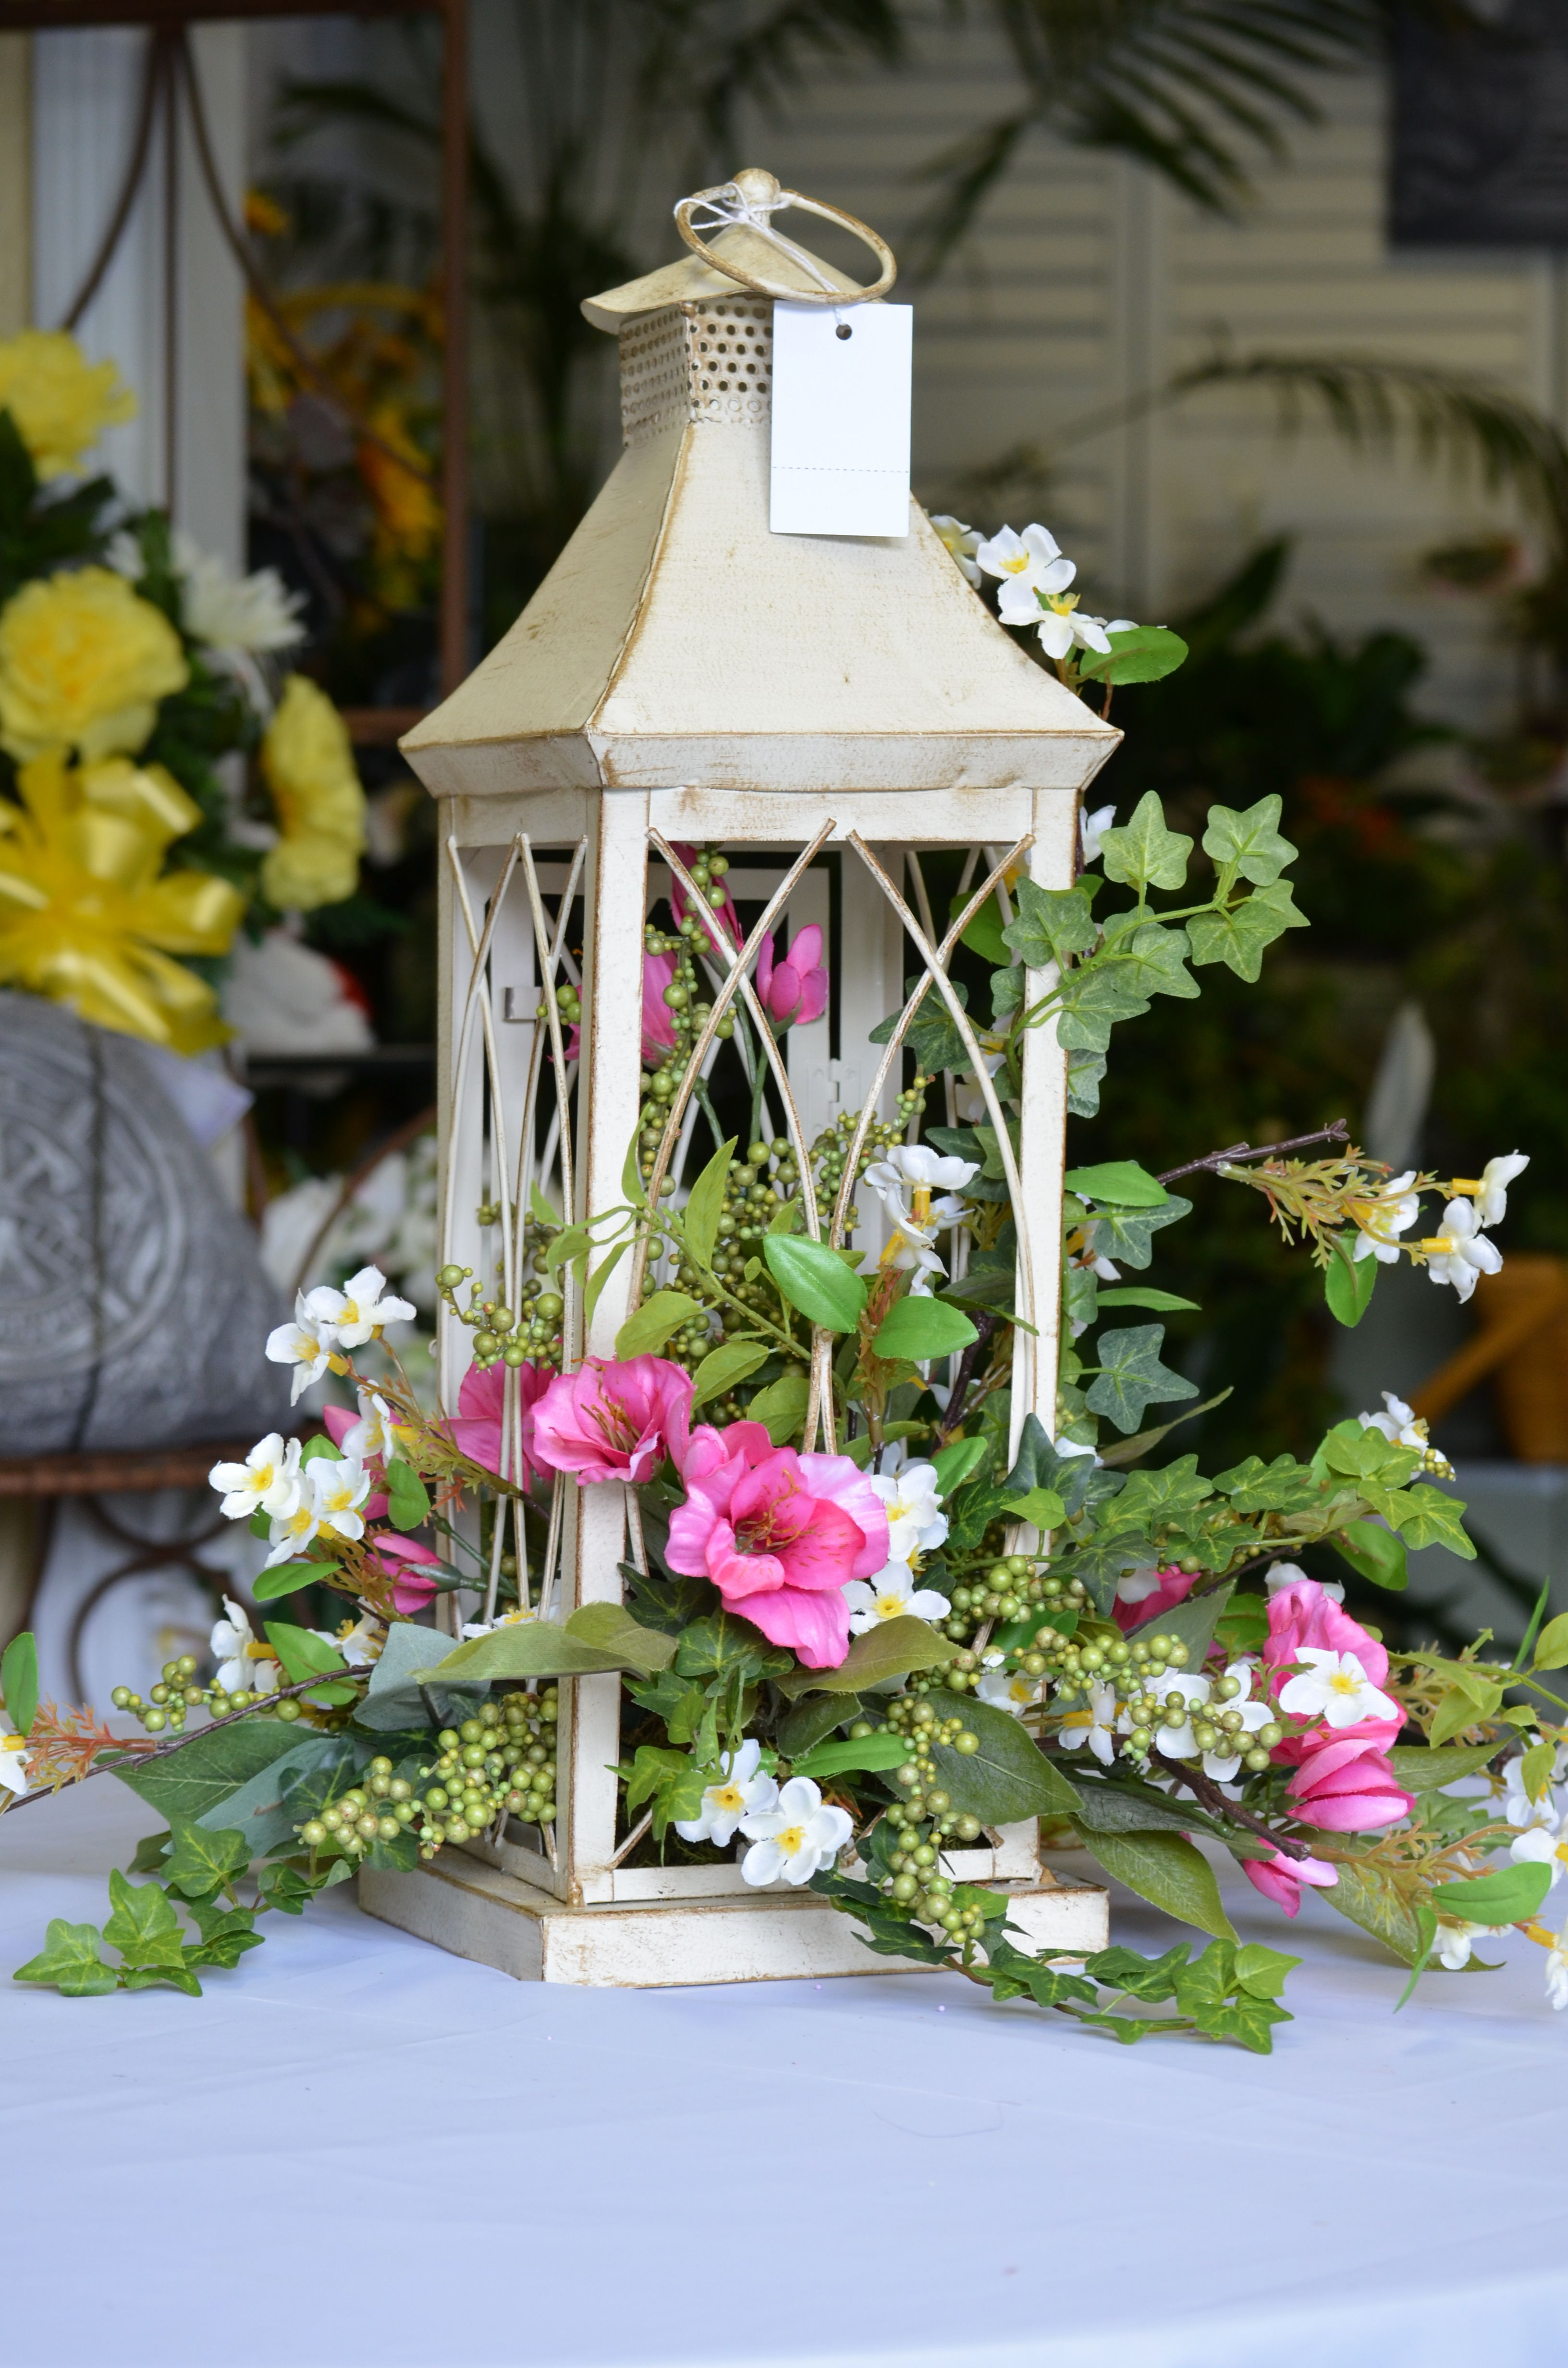 A Delightful Silk Arrangement In A Lantern Never Thought About